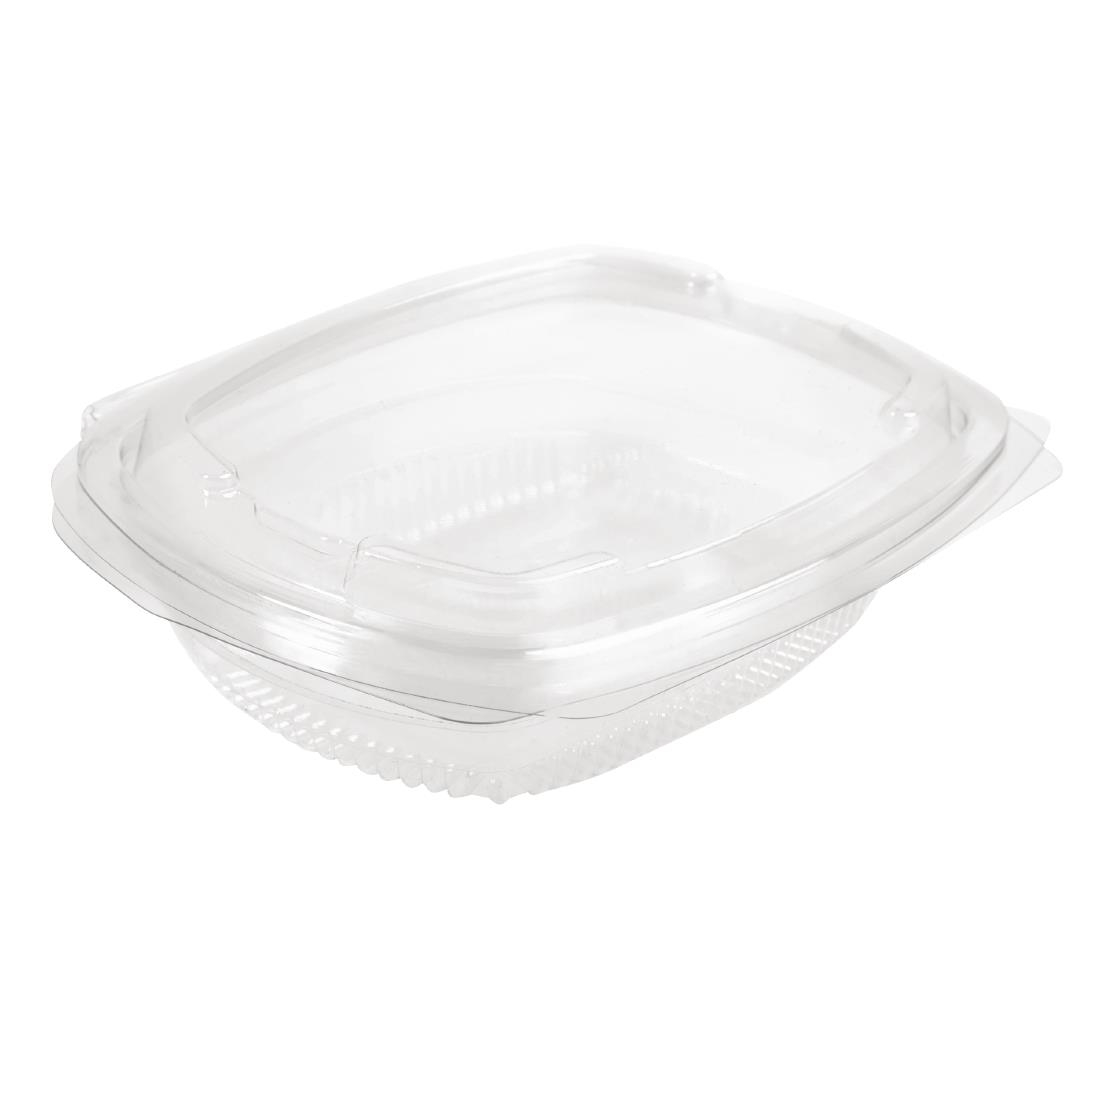 Image of Faerch Fresco Recyclable Deli Containers With Lid 375ml / 13oz (Pack of 500) Pack of 500